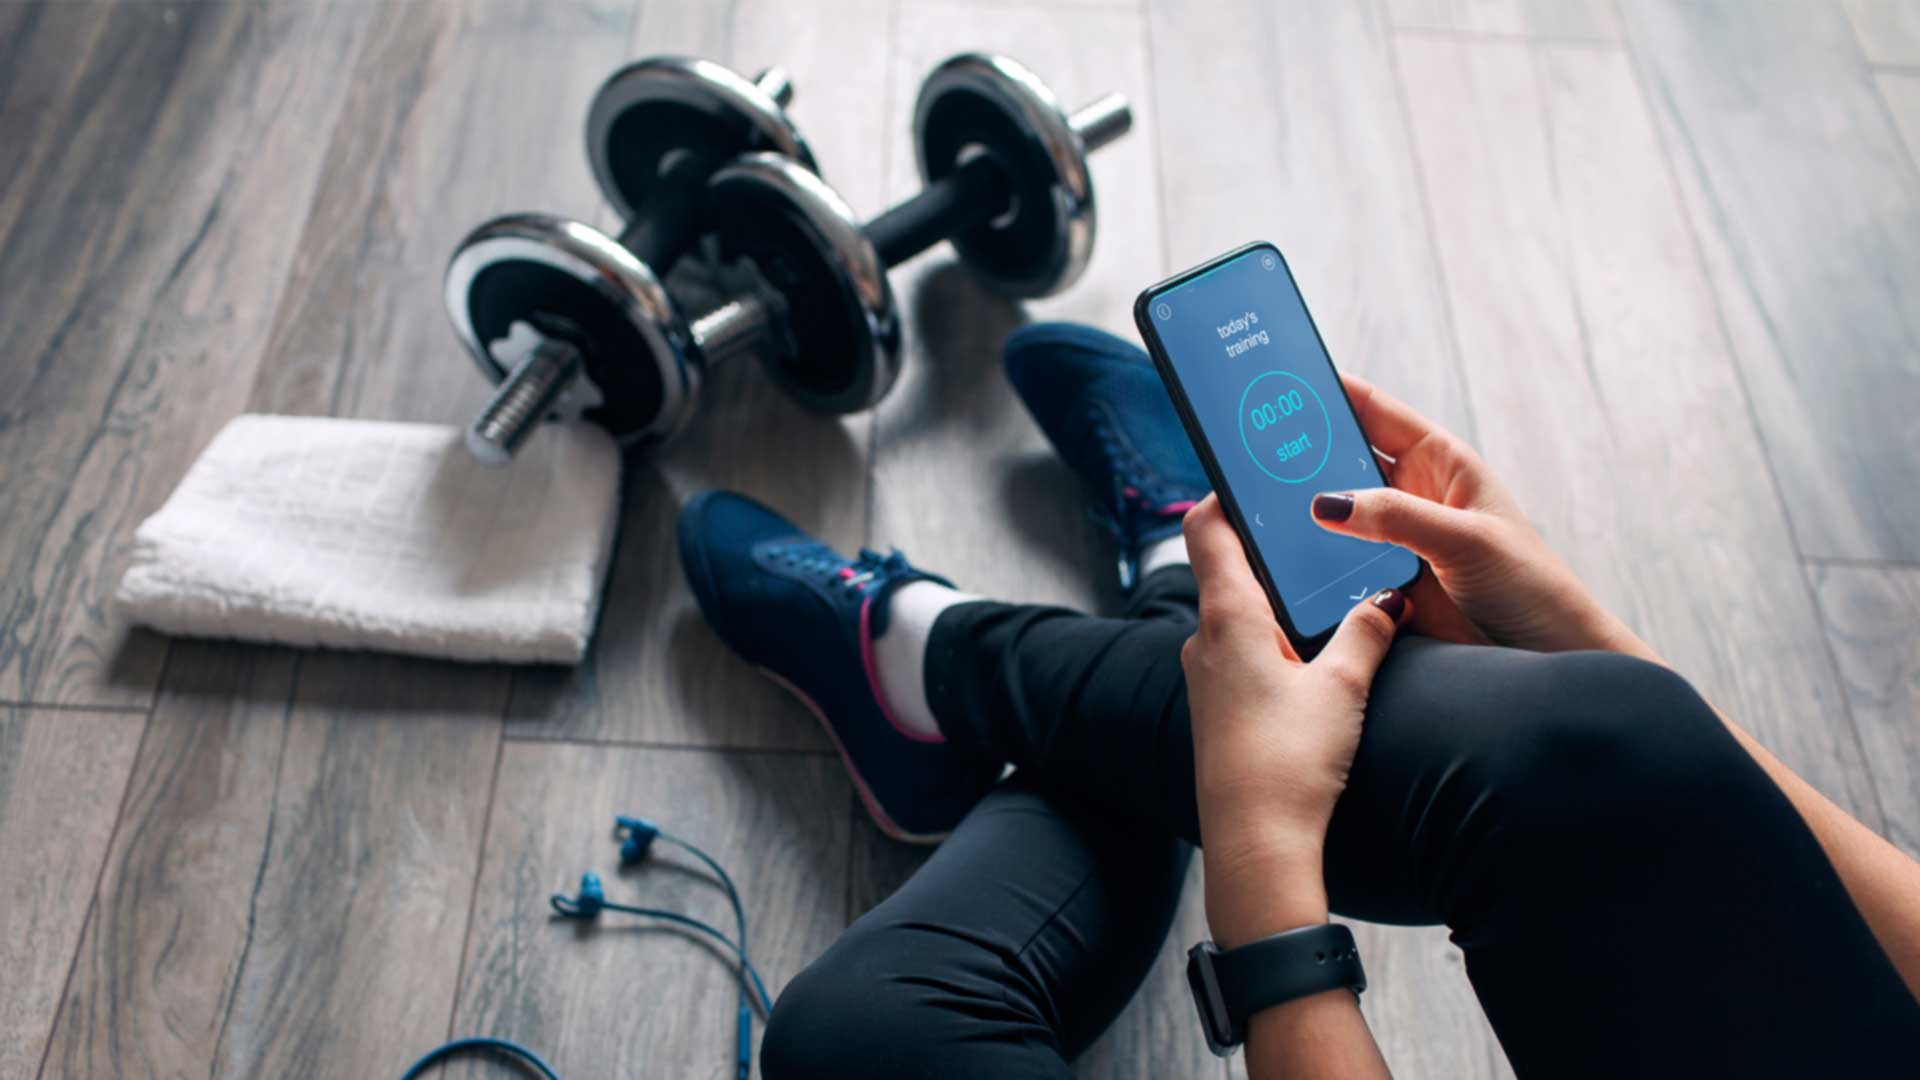 Woman sitting on the floor of a gym looking at her cell phone